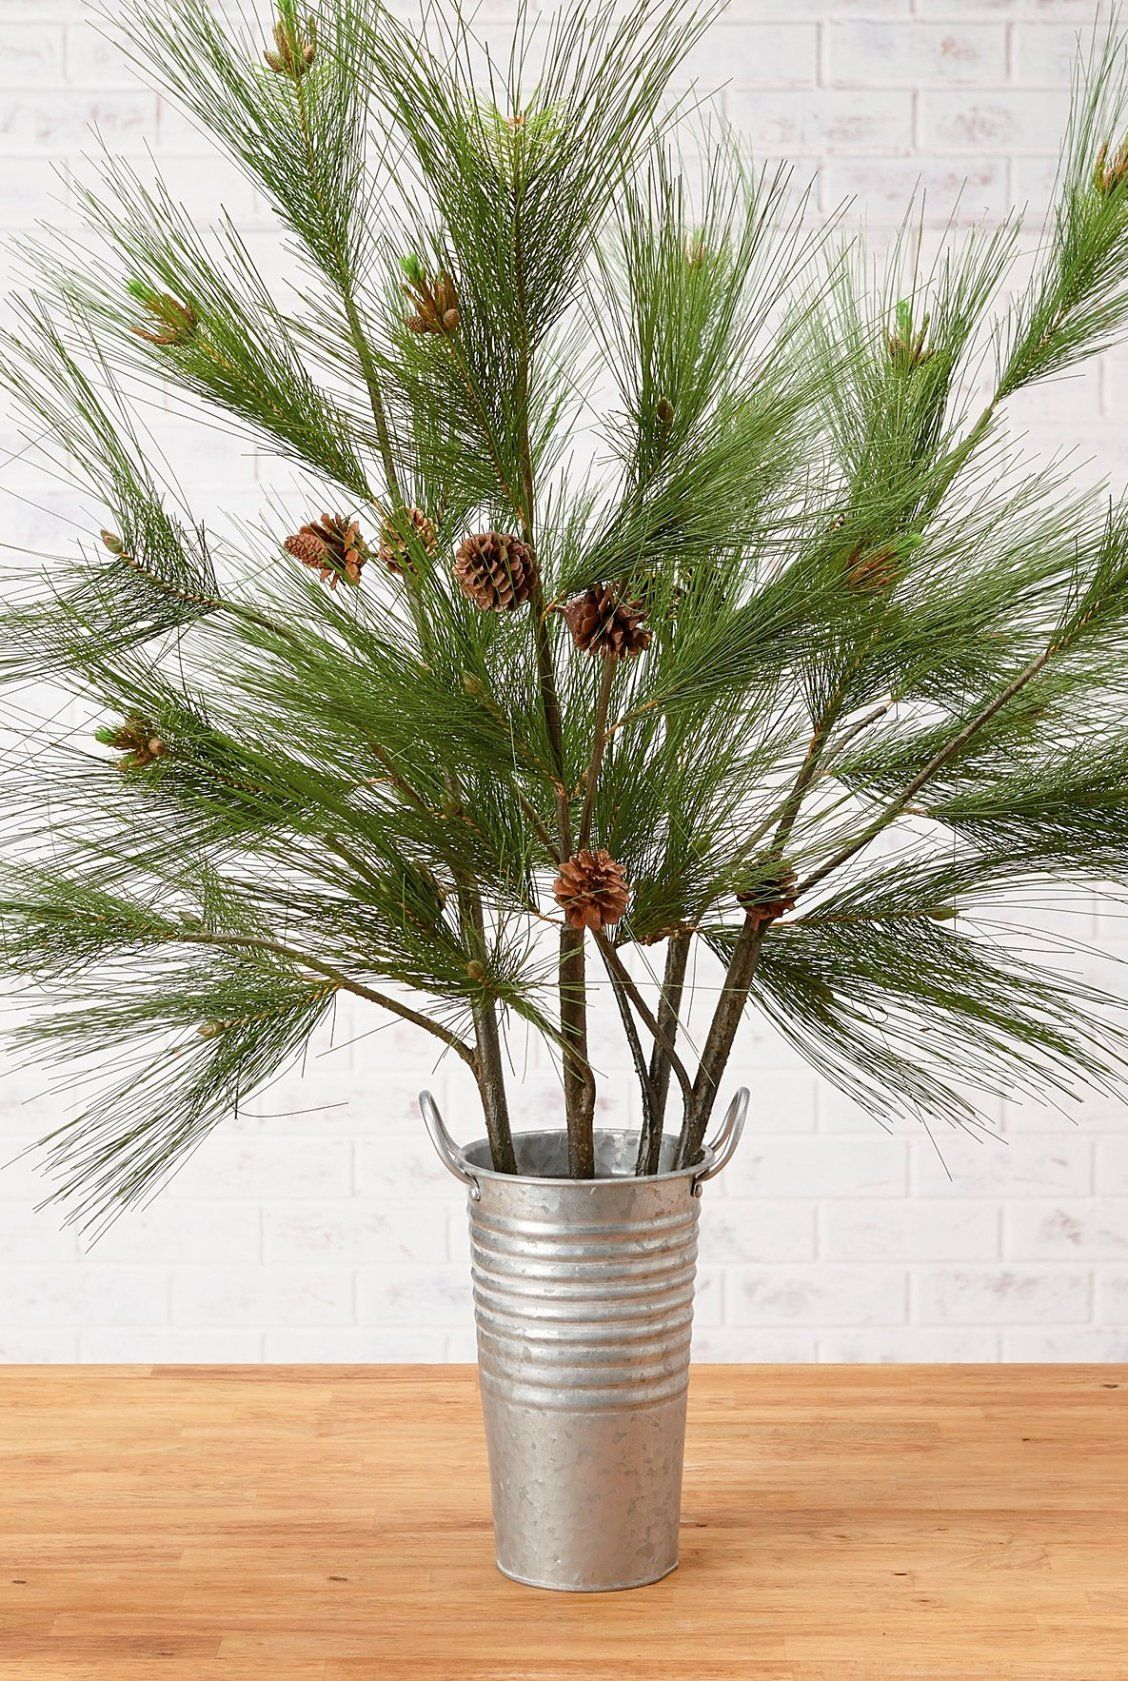 Needle Pine Sprays Set Of Four Frontgate In 2020 Tree Branch Decor Vase With Branches Branch Decor